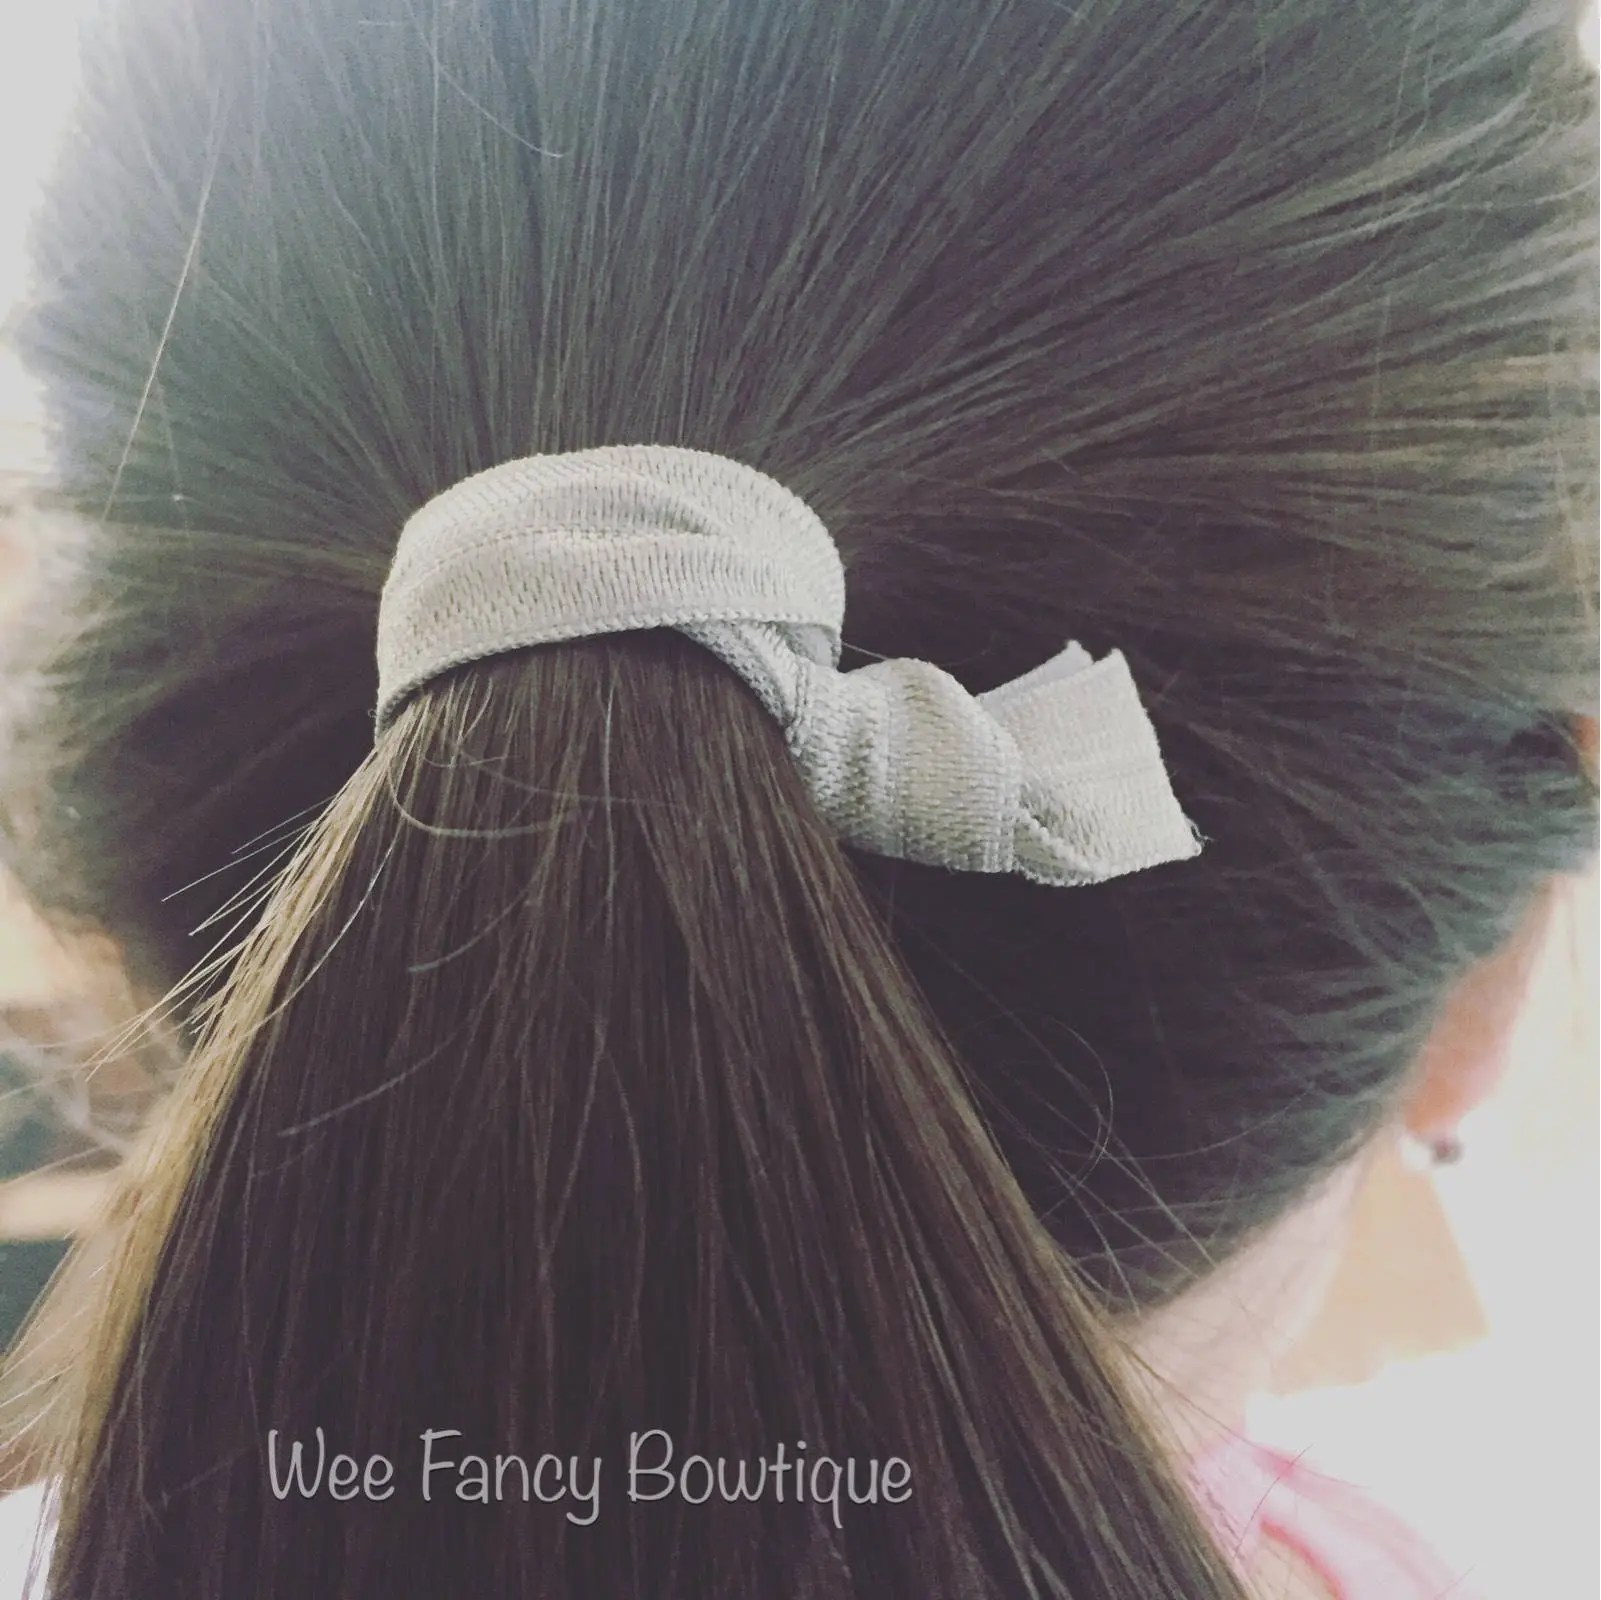 CUSTOM BACHELORETTE Hair Tie Favors To Have and To Hold Your image 2